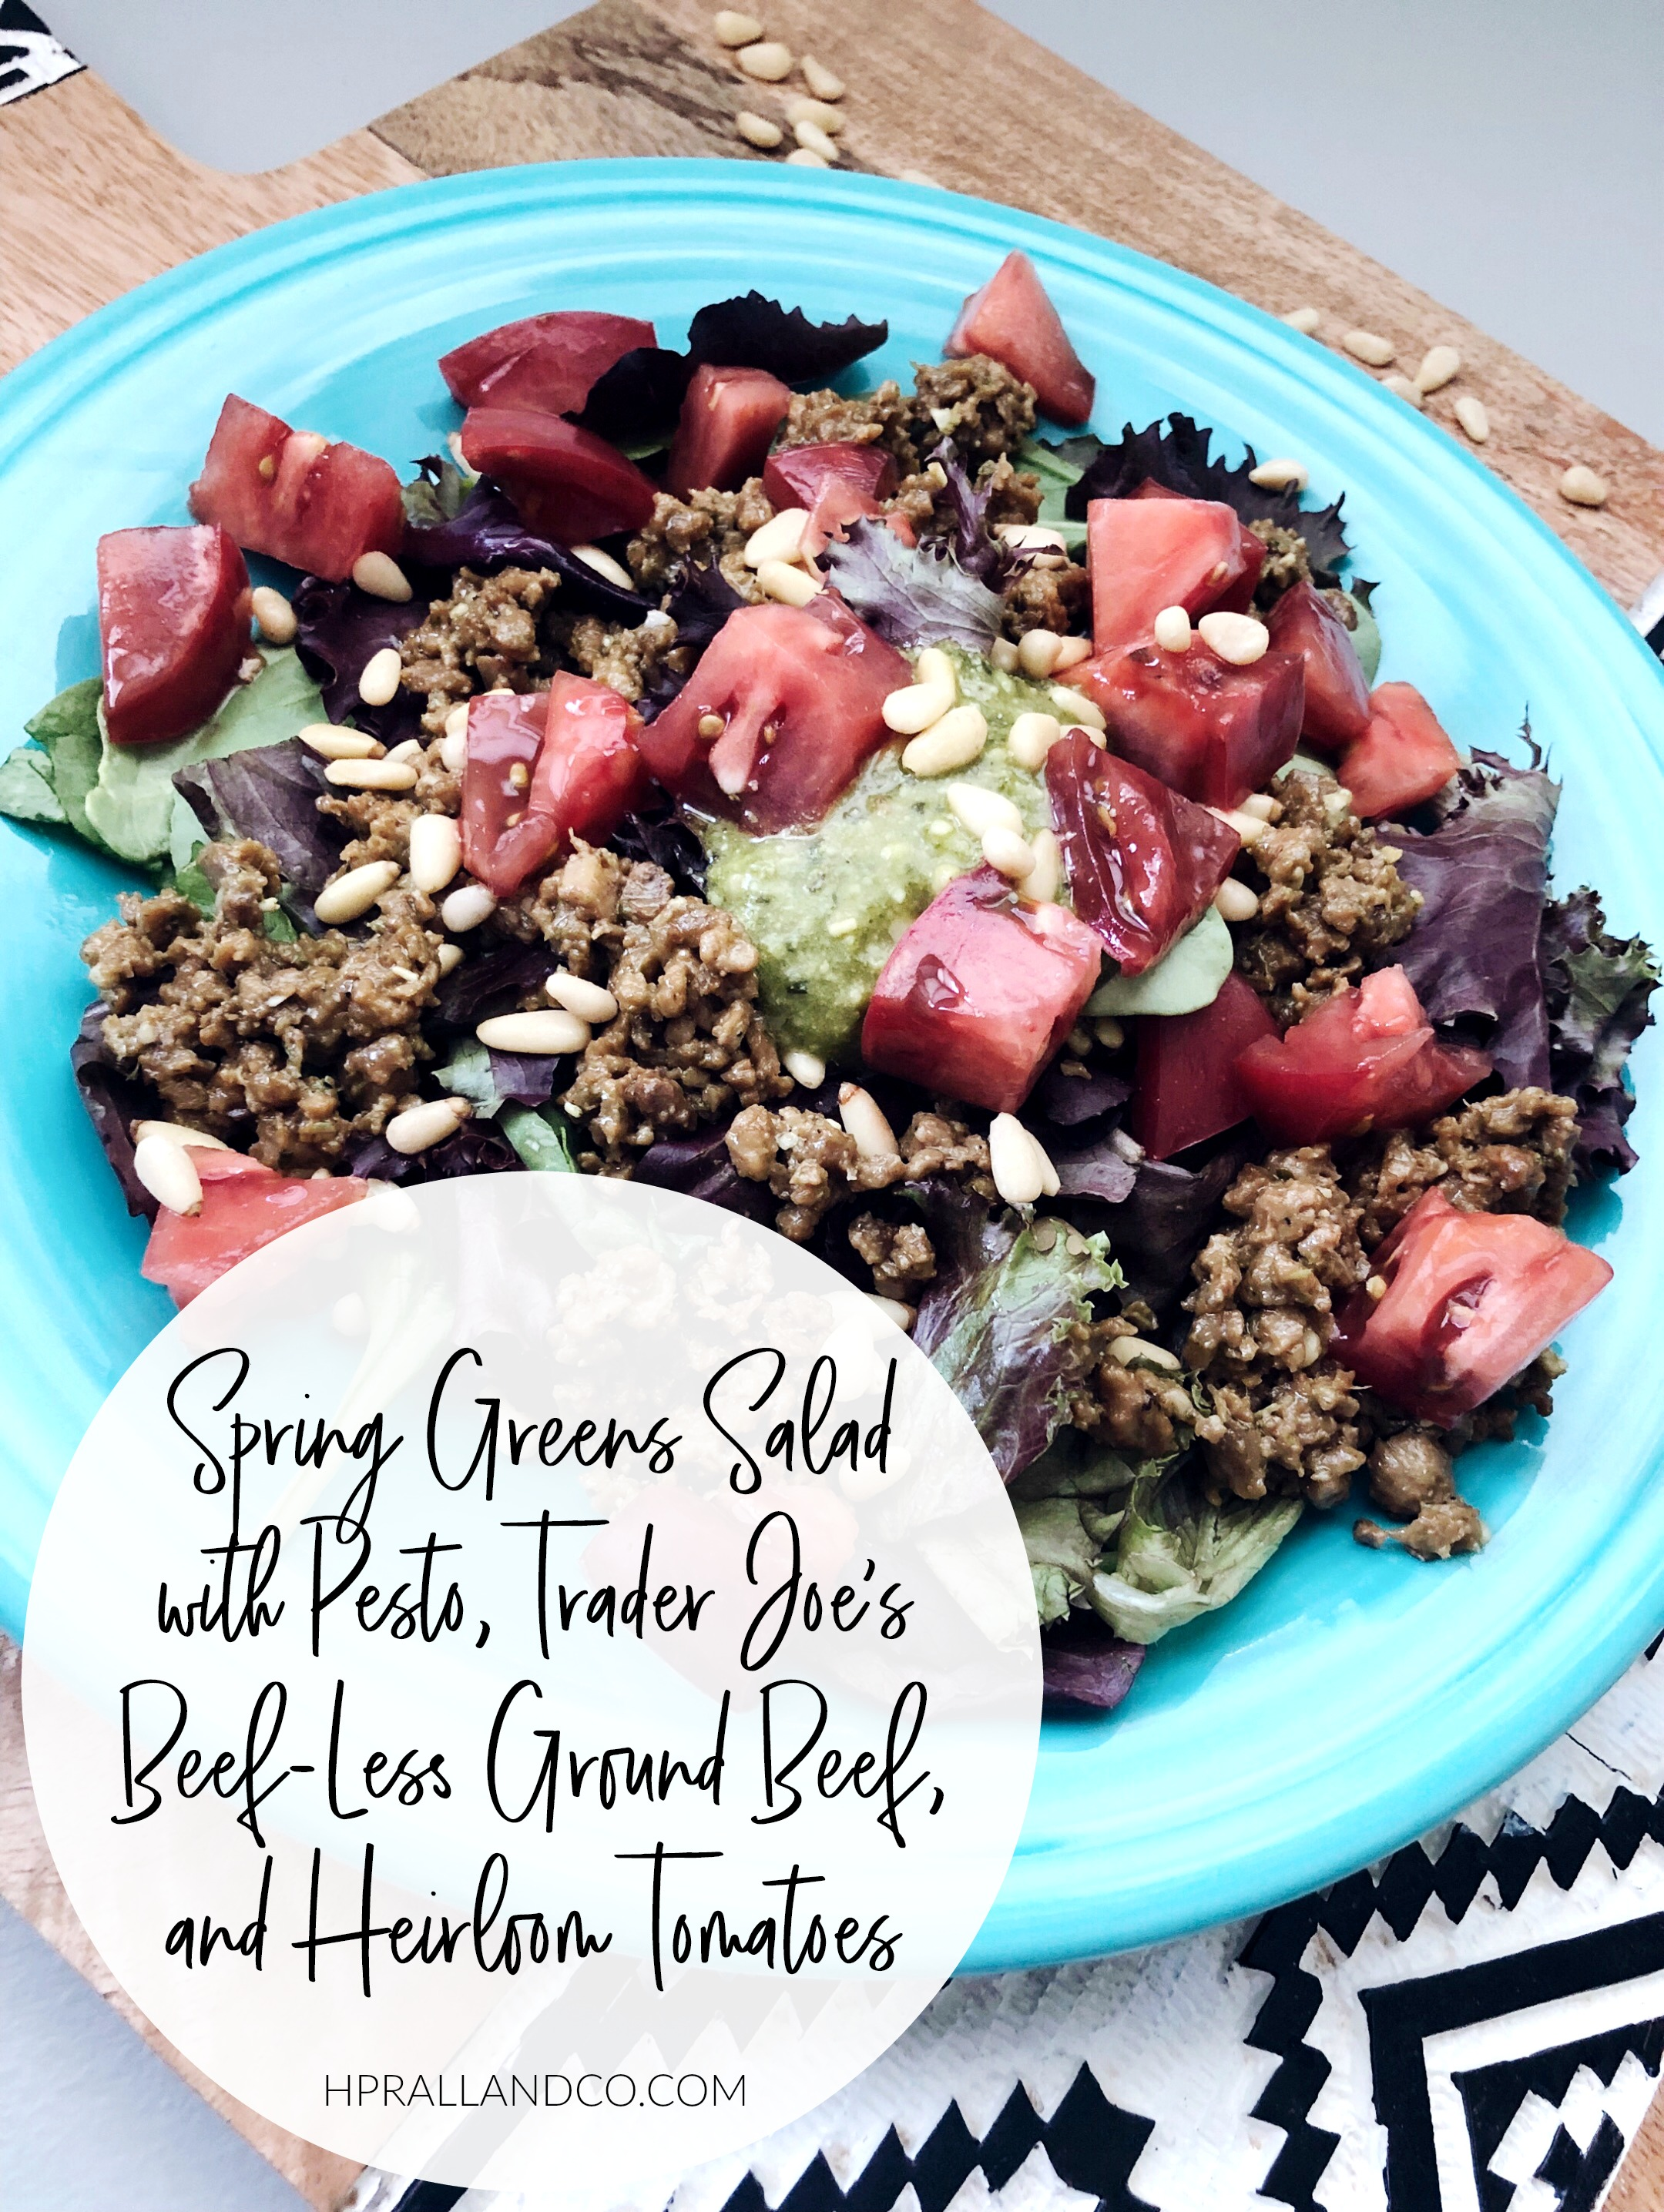 Spring Greens Salad with Pesto, Trader Joe's Beef-Less Ground Beef, and Heirloom Tomatoes | hprallandco.com